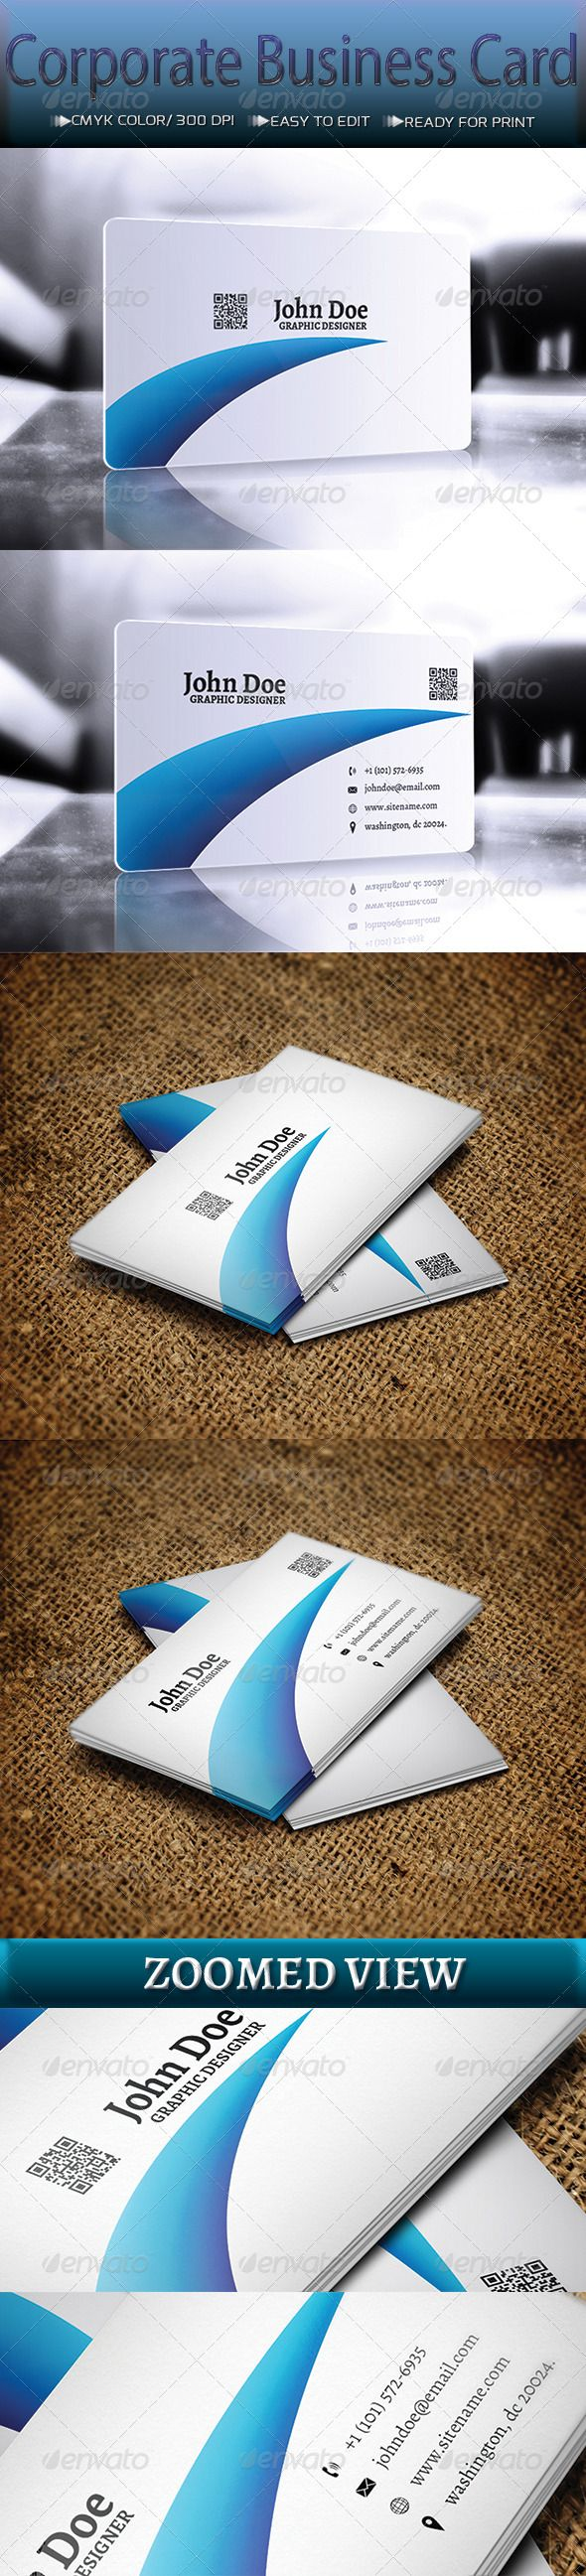 88 best print templates images on pinterest modelos de impresso corporate business card graphicriver business card features ready to print horizontal dimension 300 dpi reheart Gallery